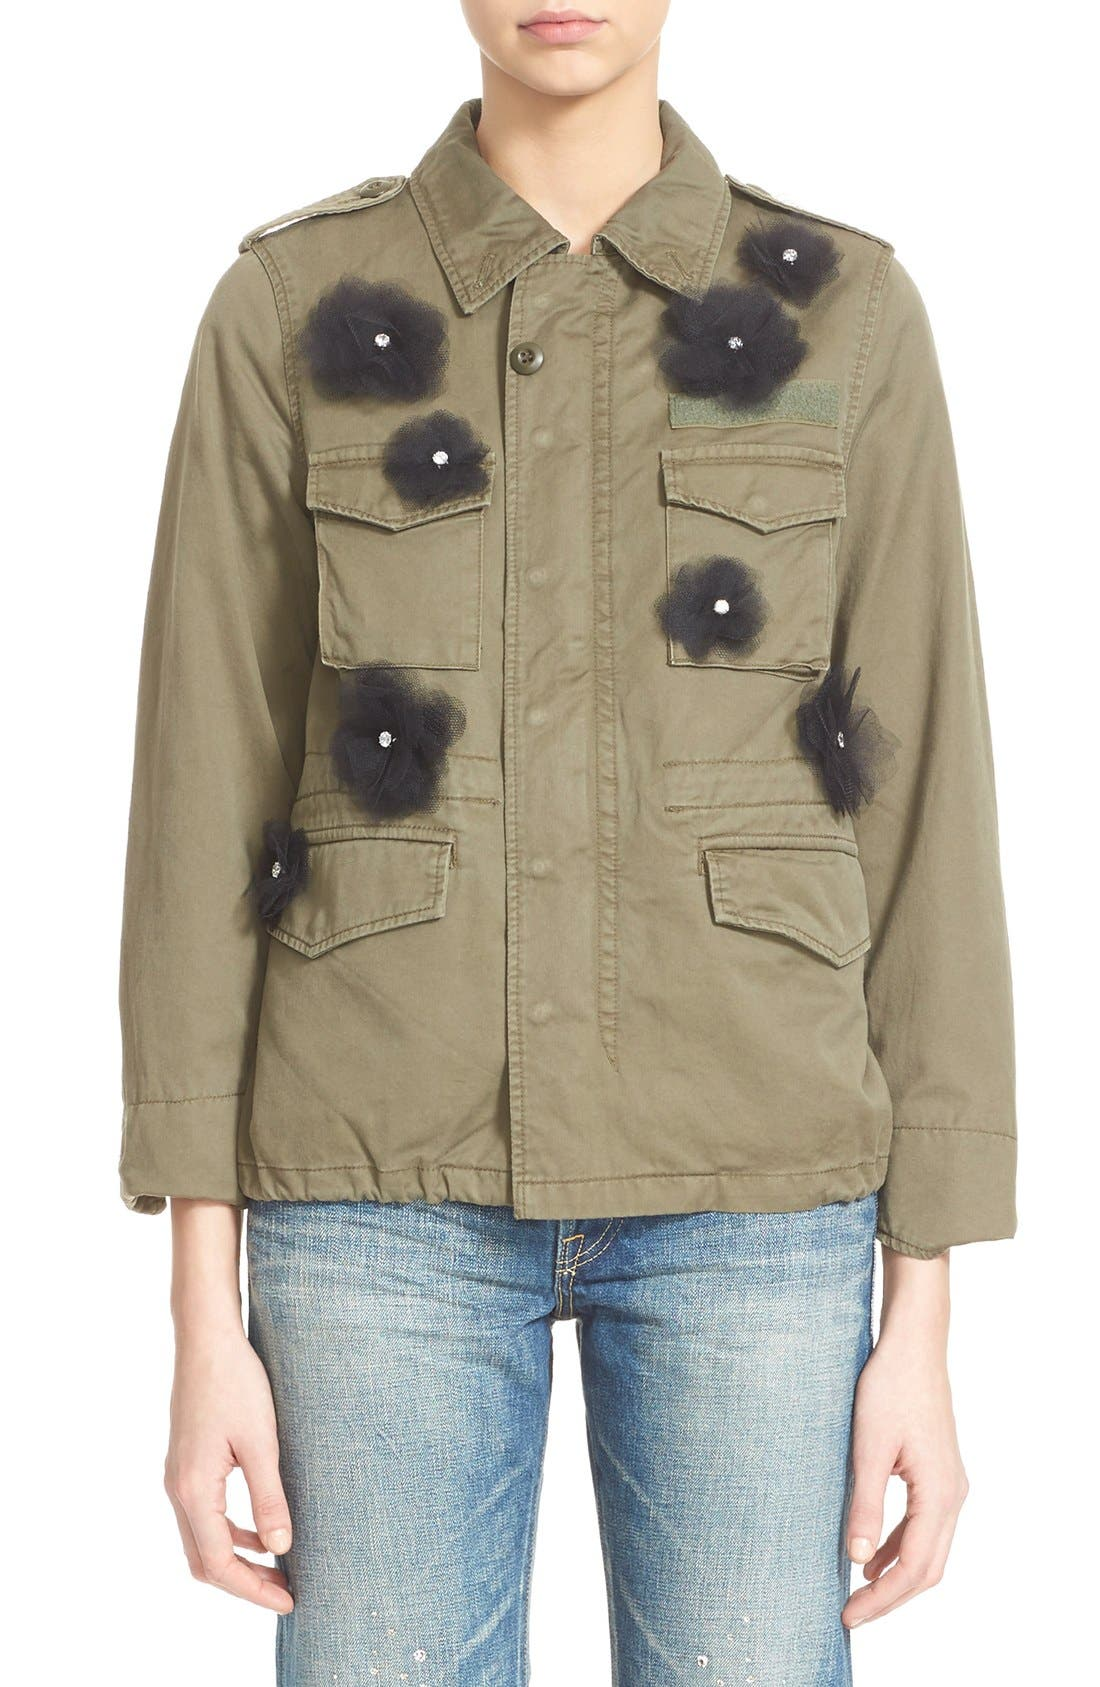 Tu es mon TRÉSOR Tulle Flower Military Jacket